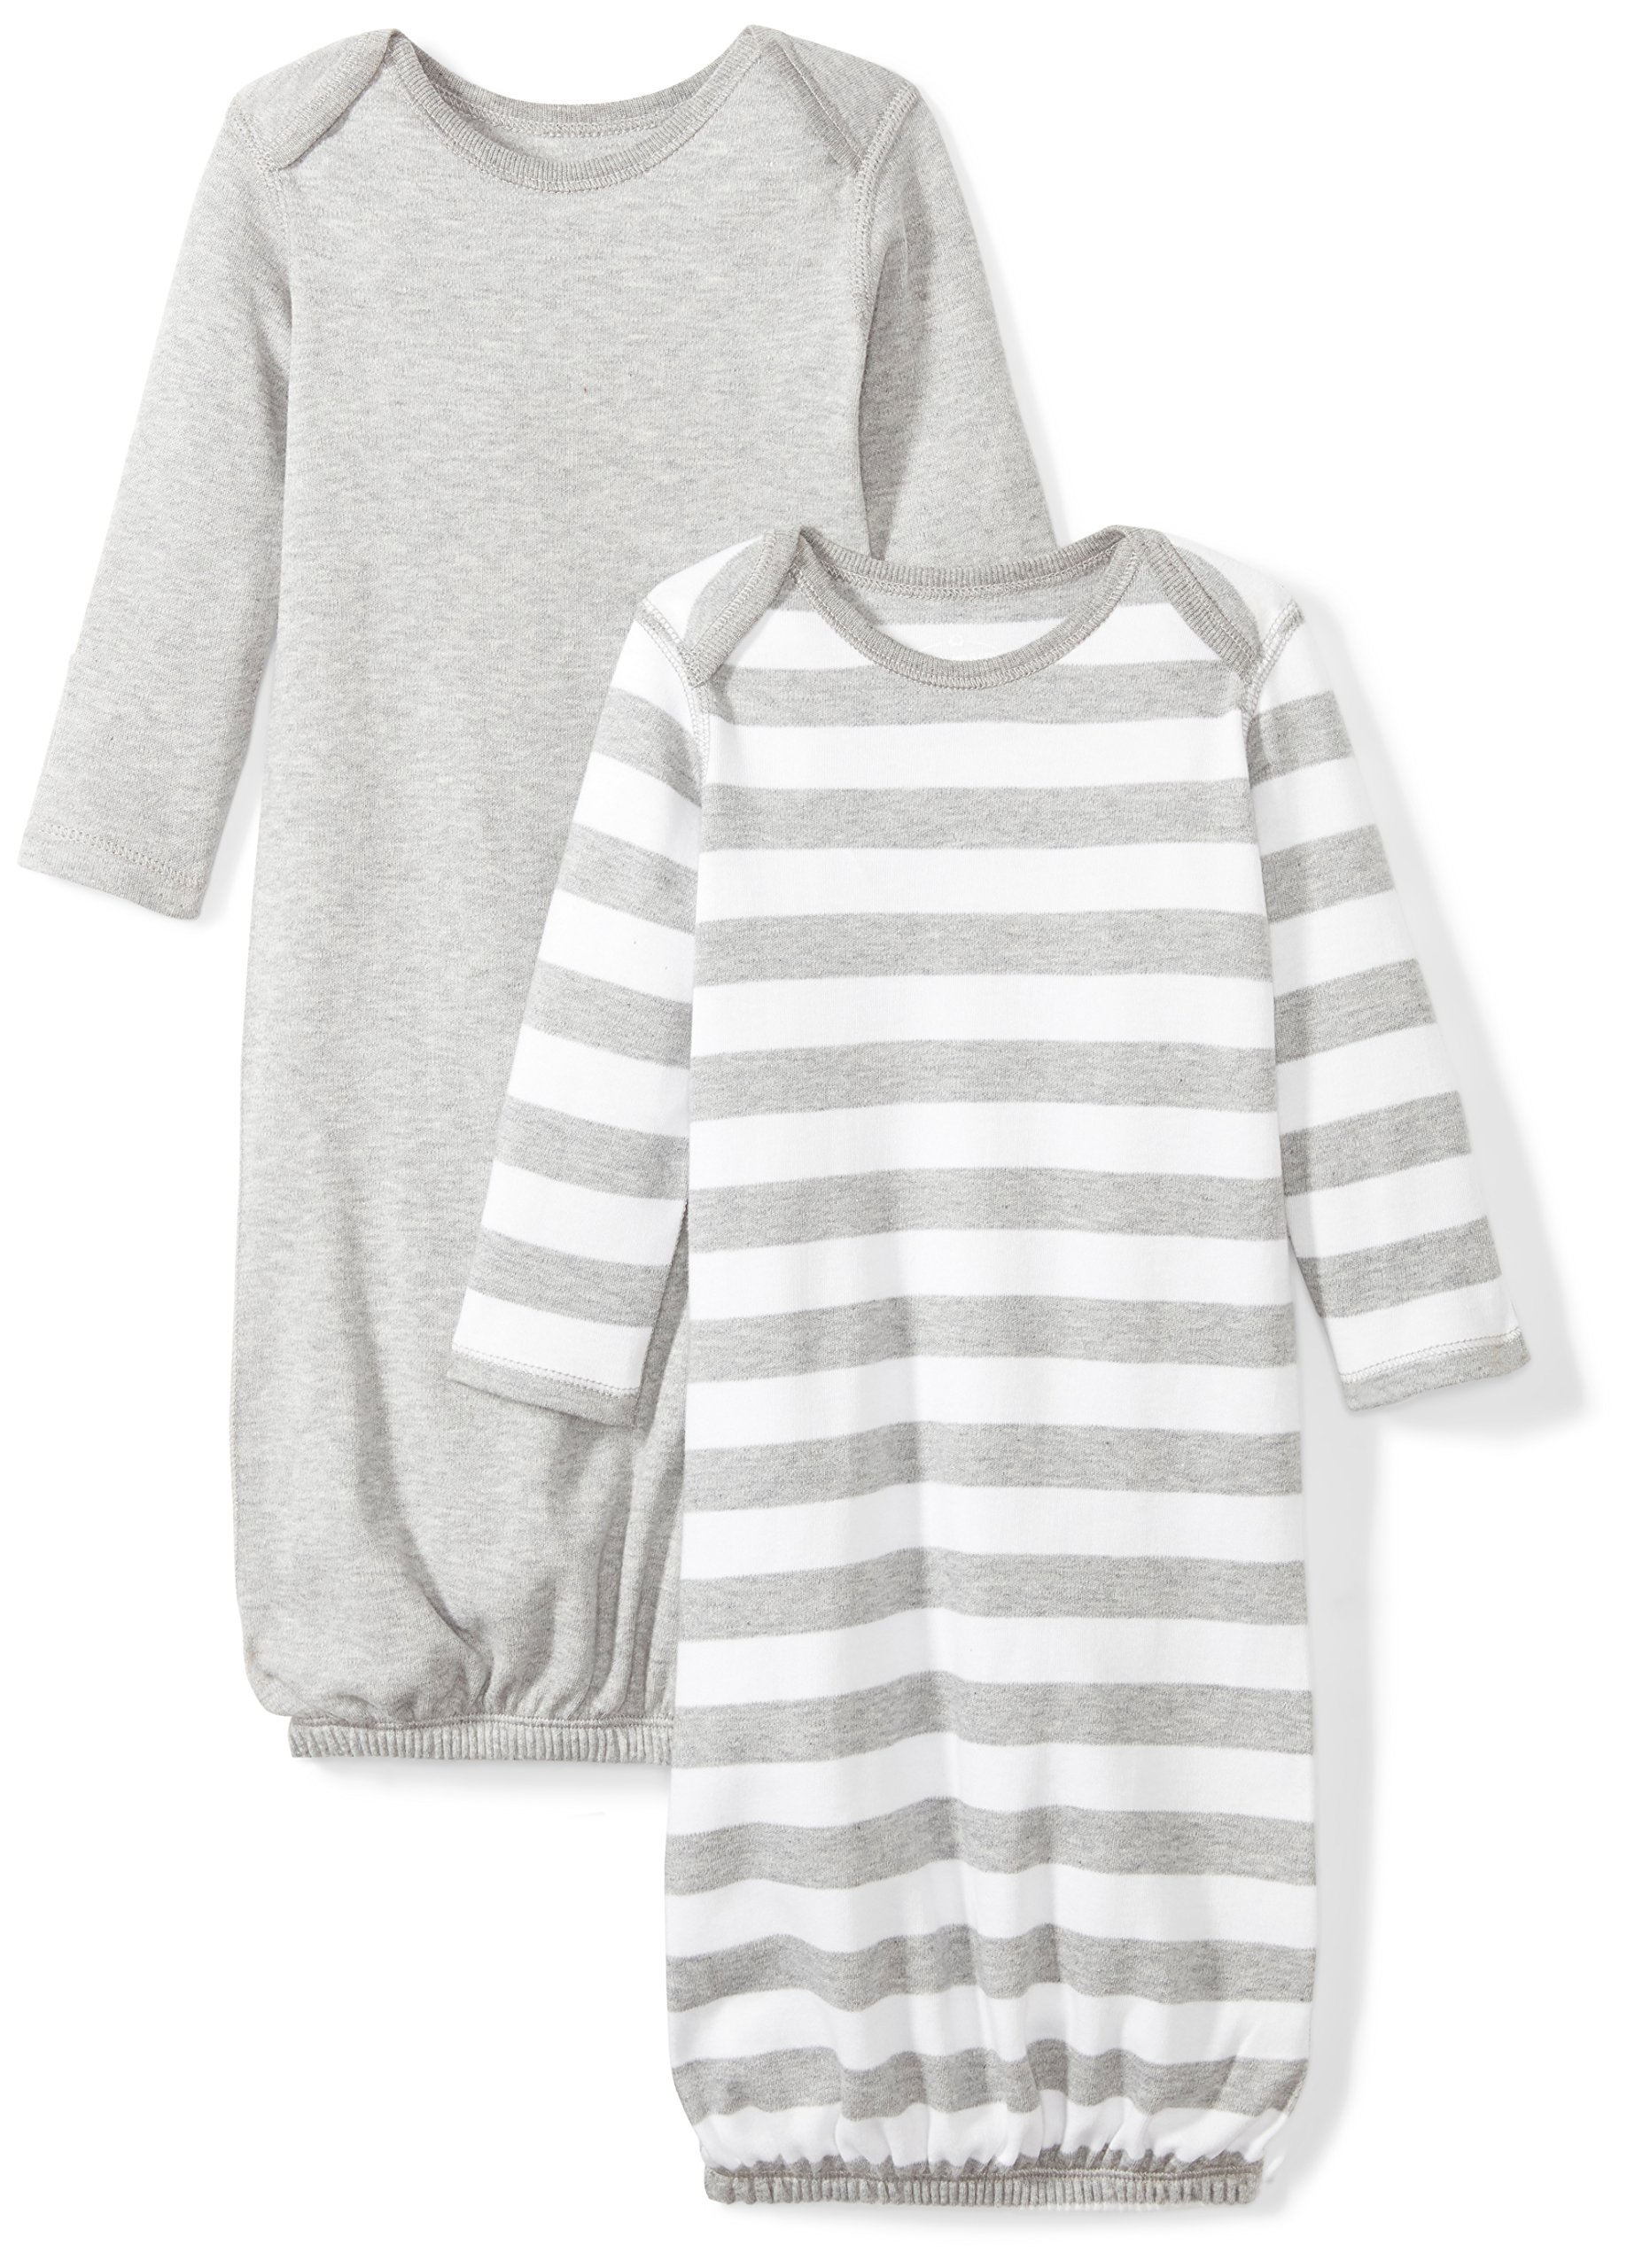 Moon and Back Baby Set of 2 Organic Sleeper Gowns, Grey Heather, 0-6 Months